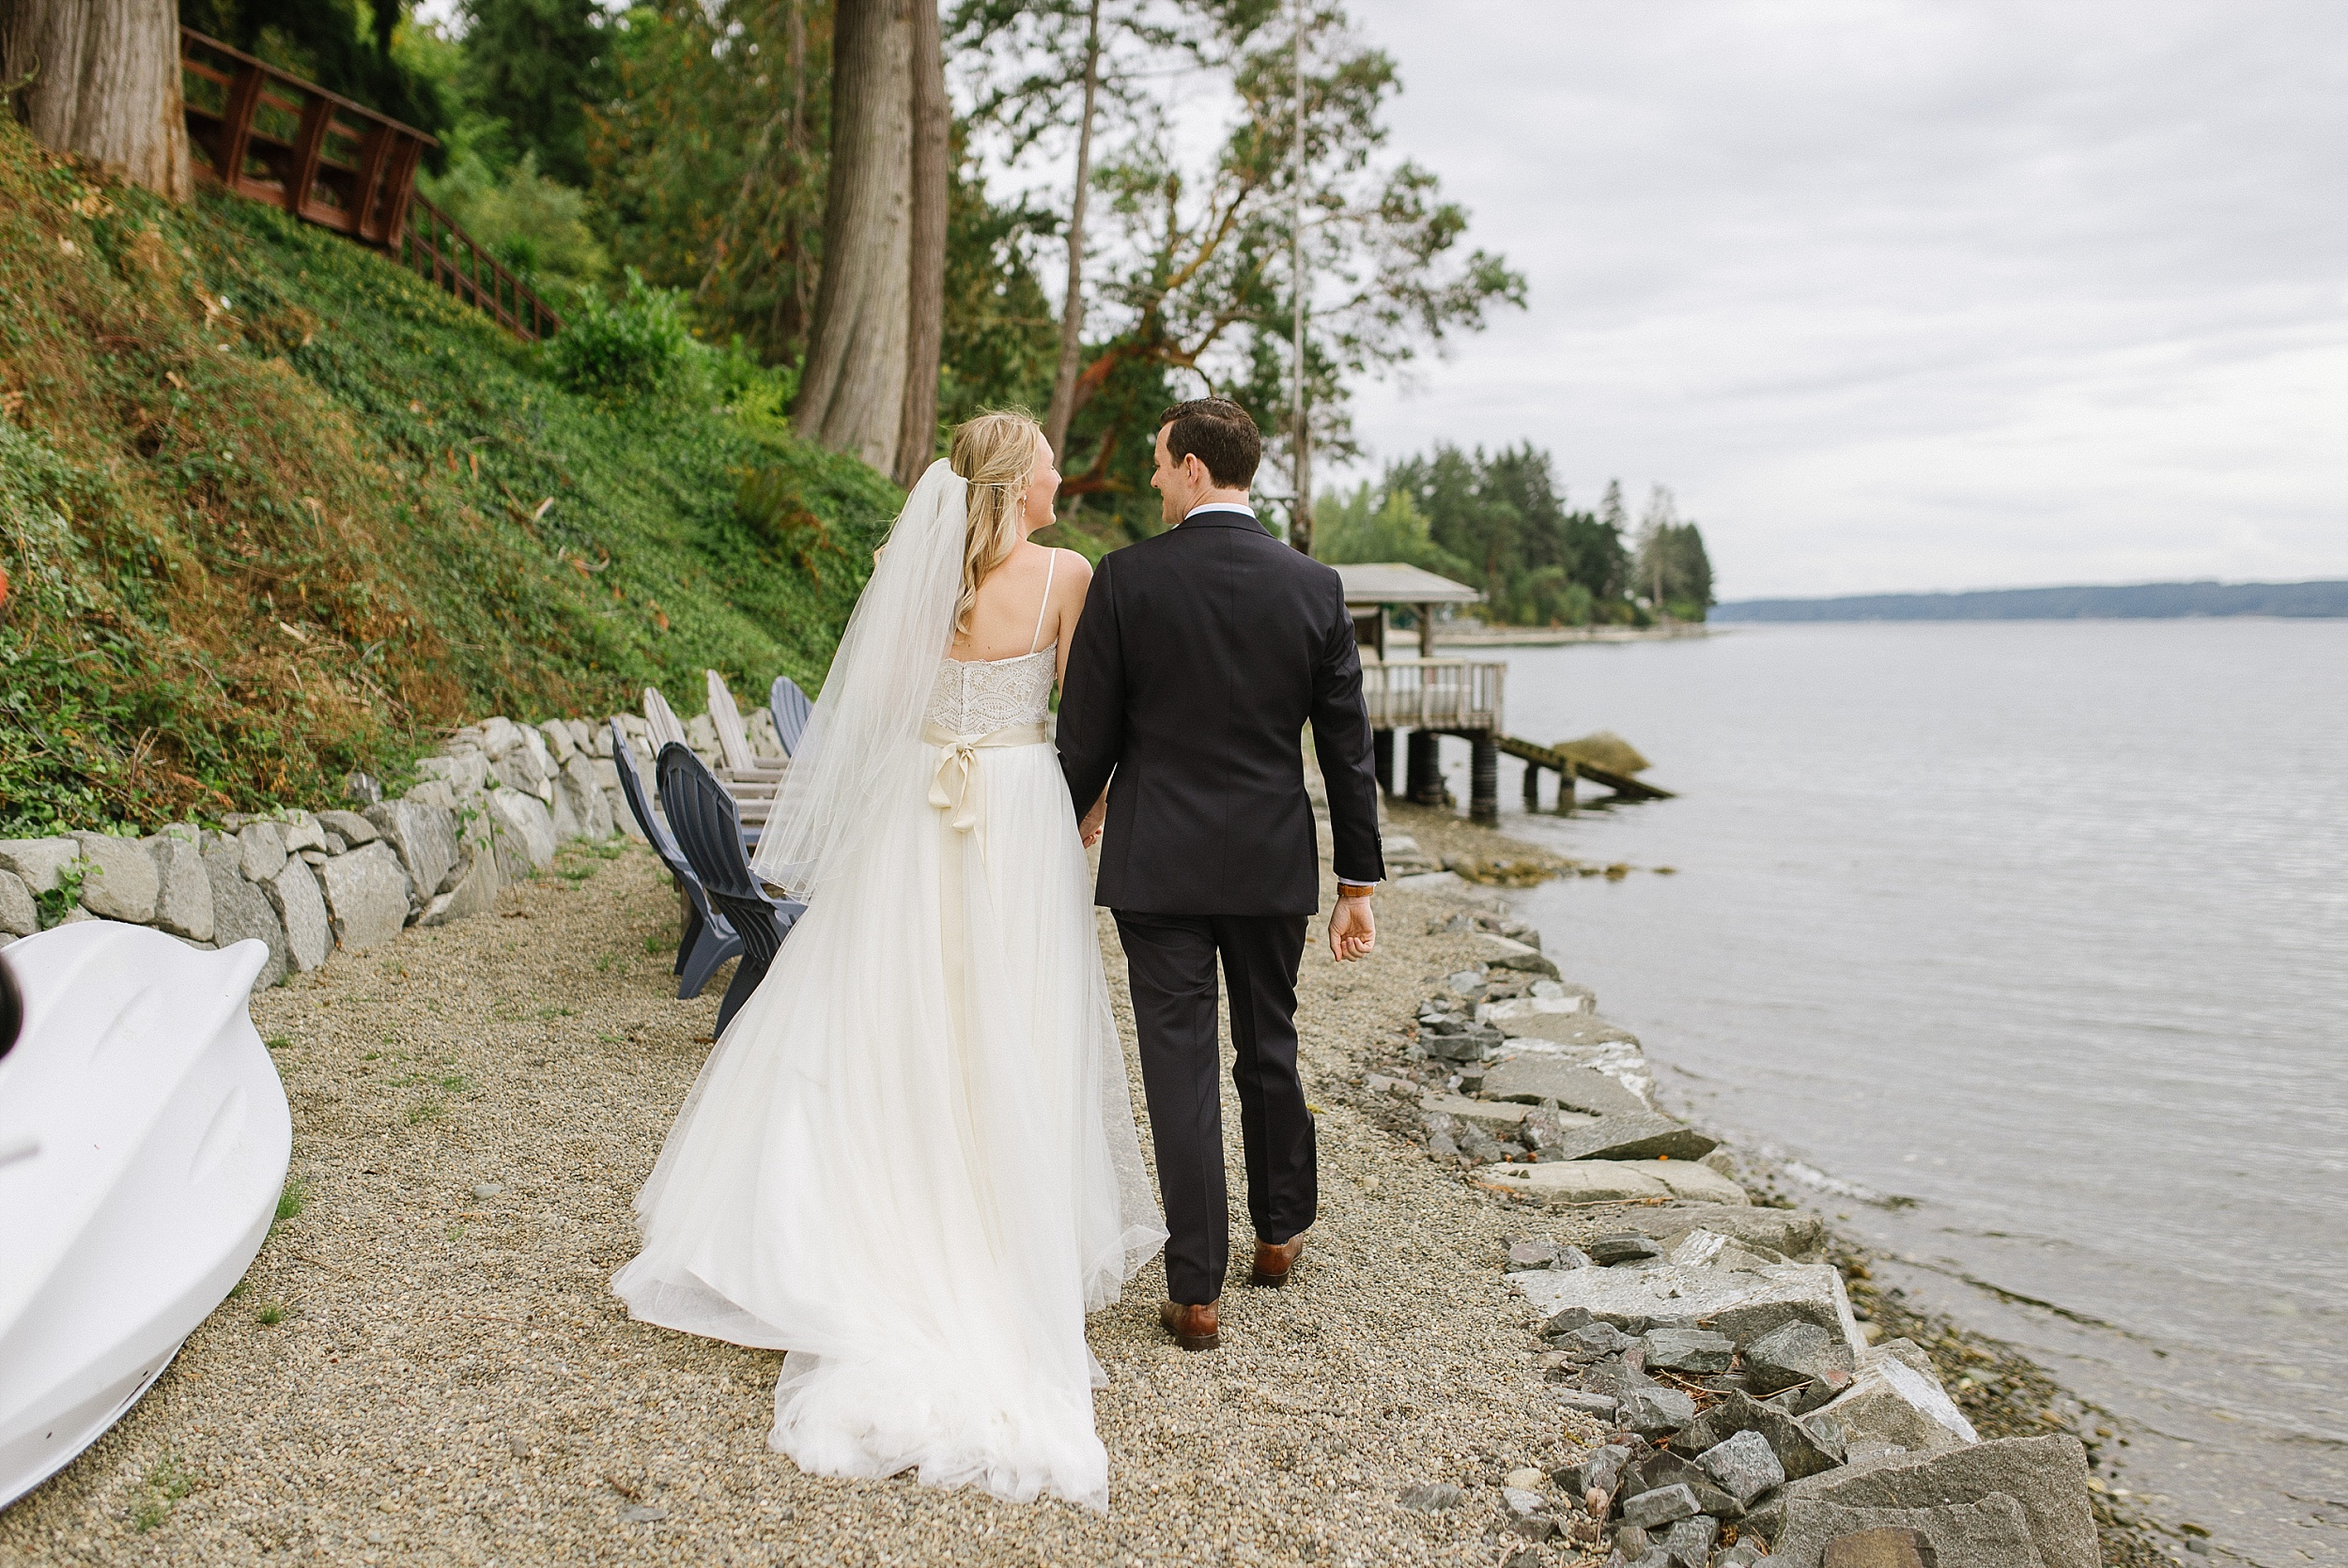 gig_harbor_washington_wedding_danacolin_cdp_0020.jpg